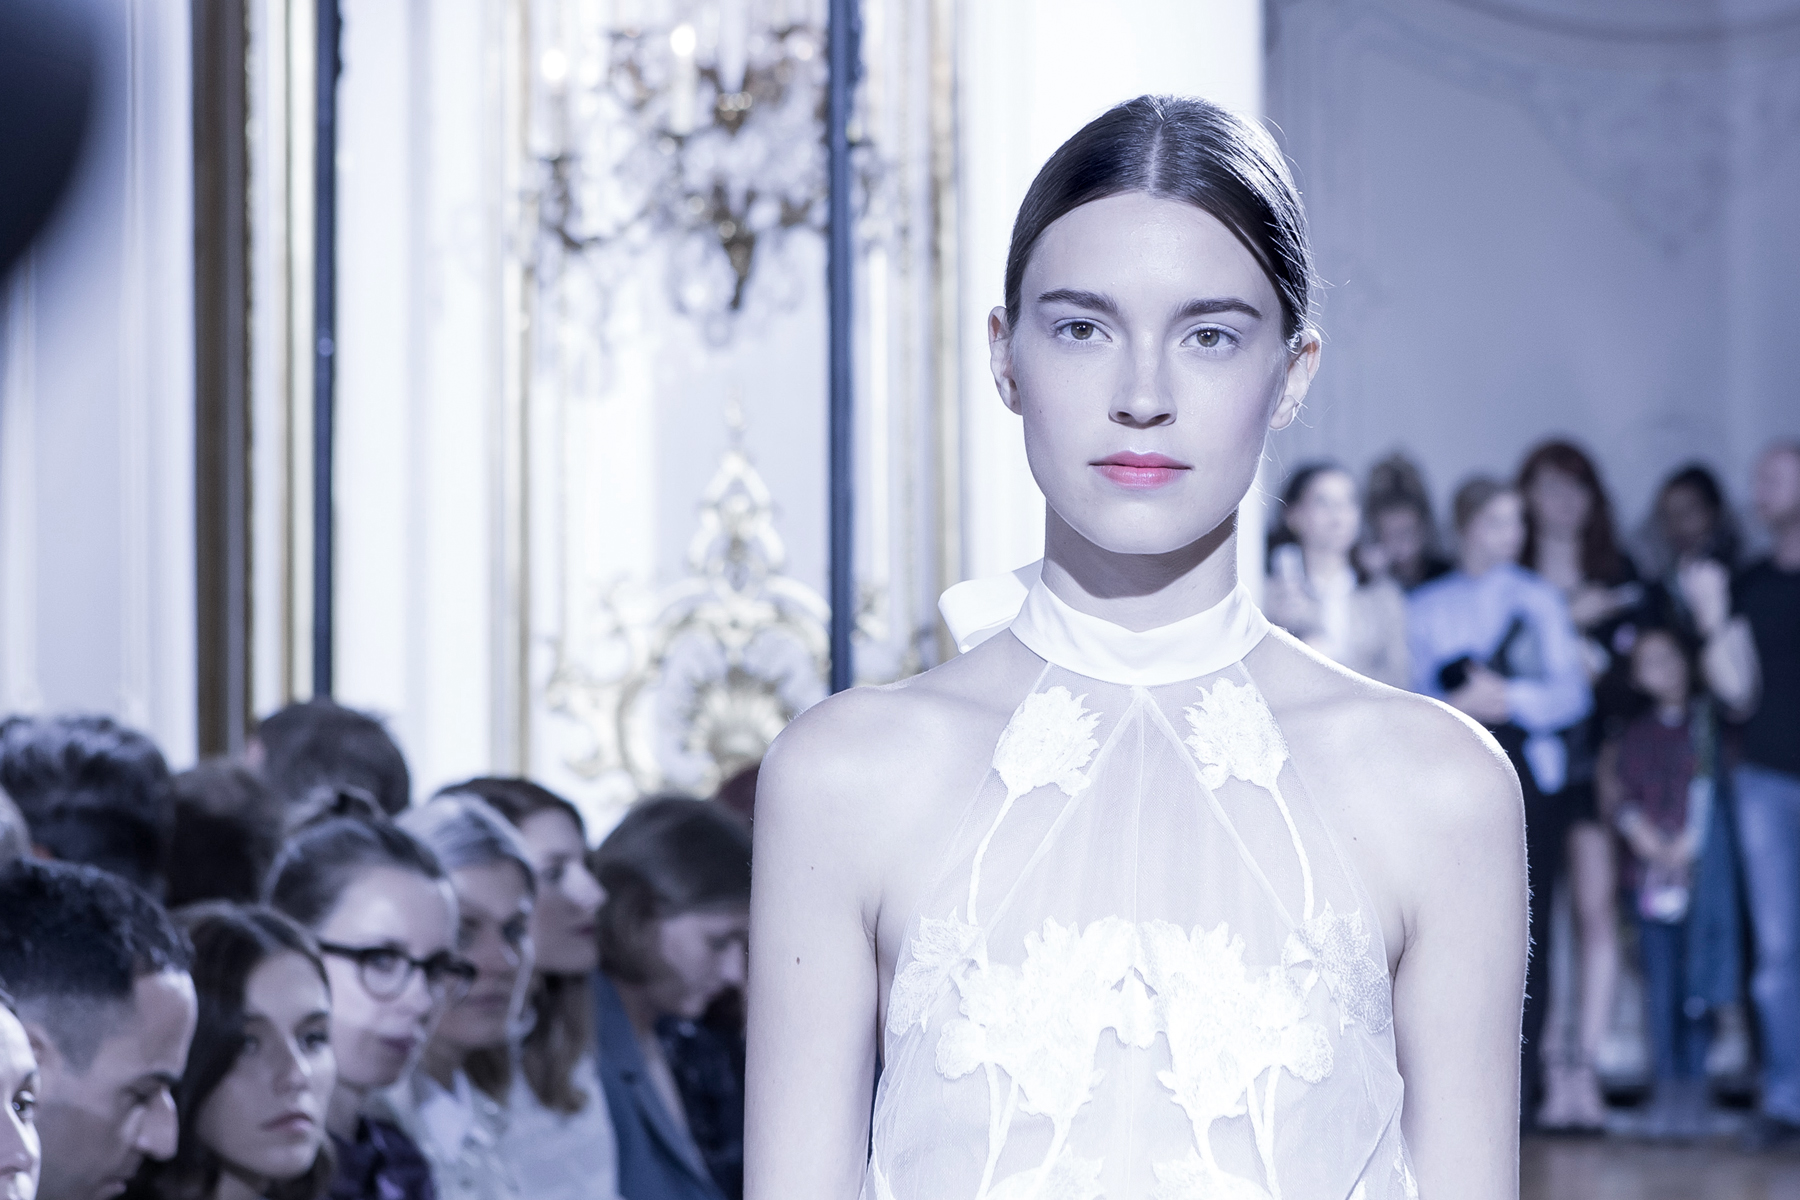 kaviar gauche s/s 2016 paris fashion week pfw presentation bridal dresses white makeup catrice cosmetics brautmode fashionblogger ricarda schernus cats & dogs blog 6